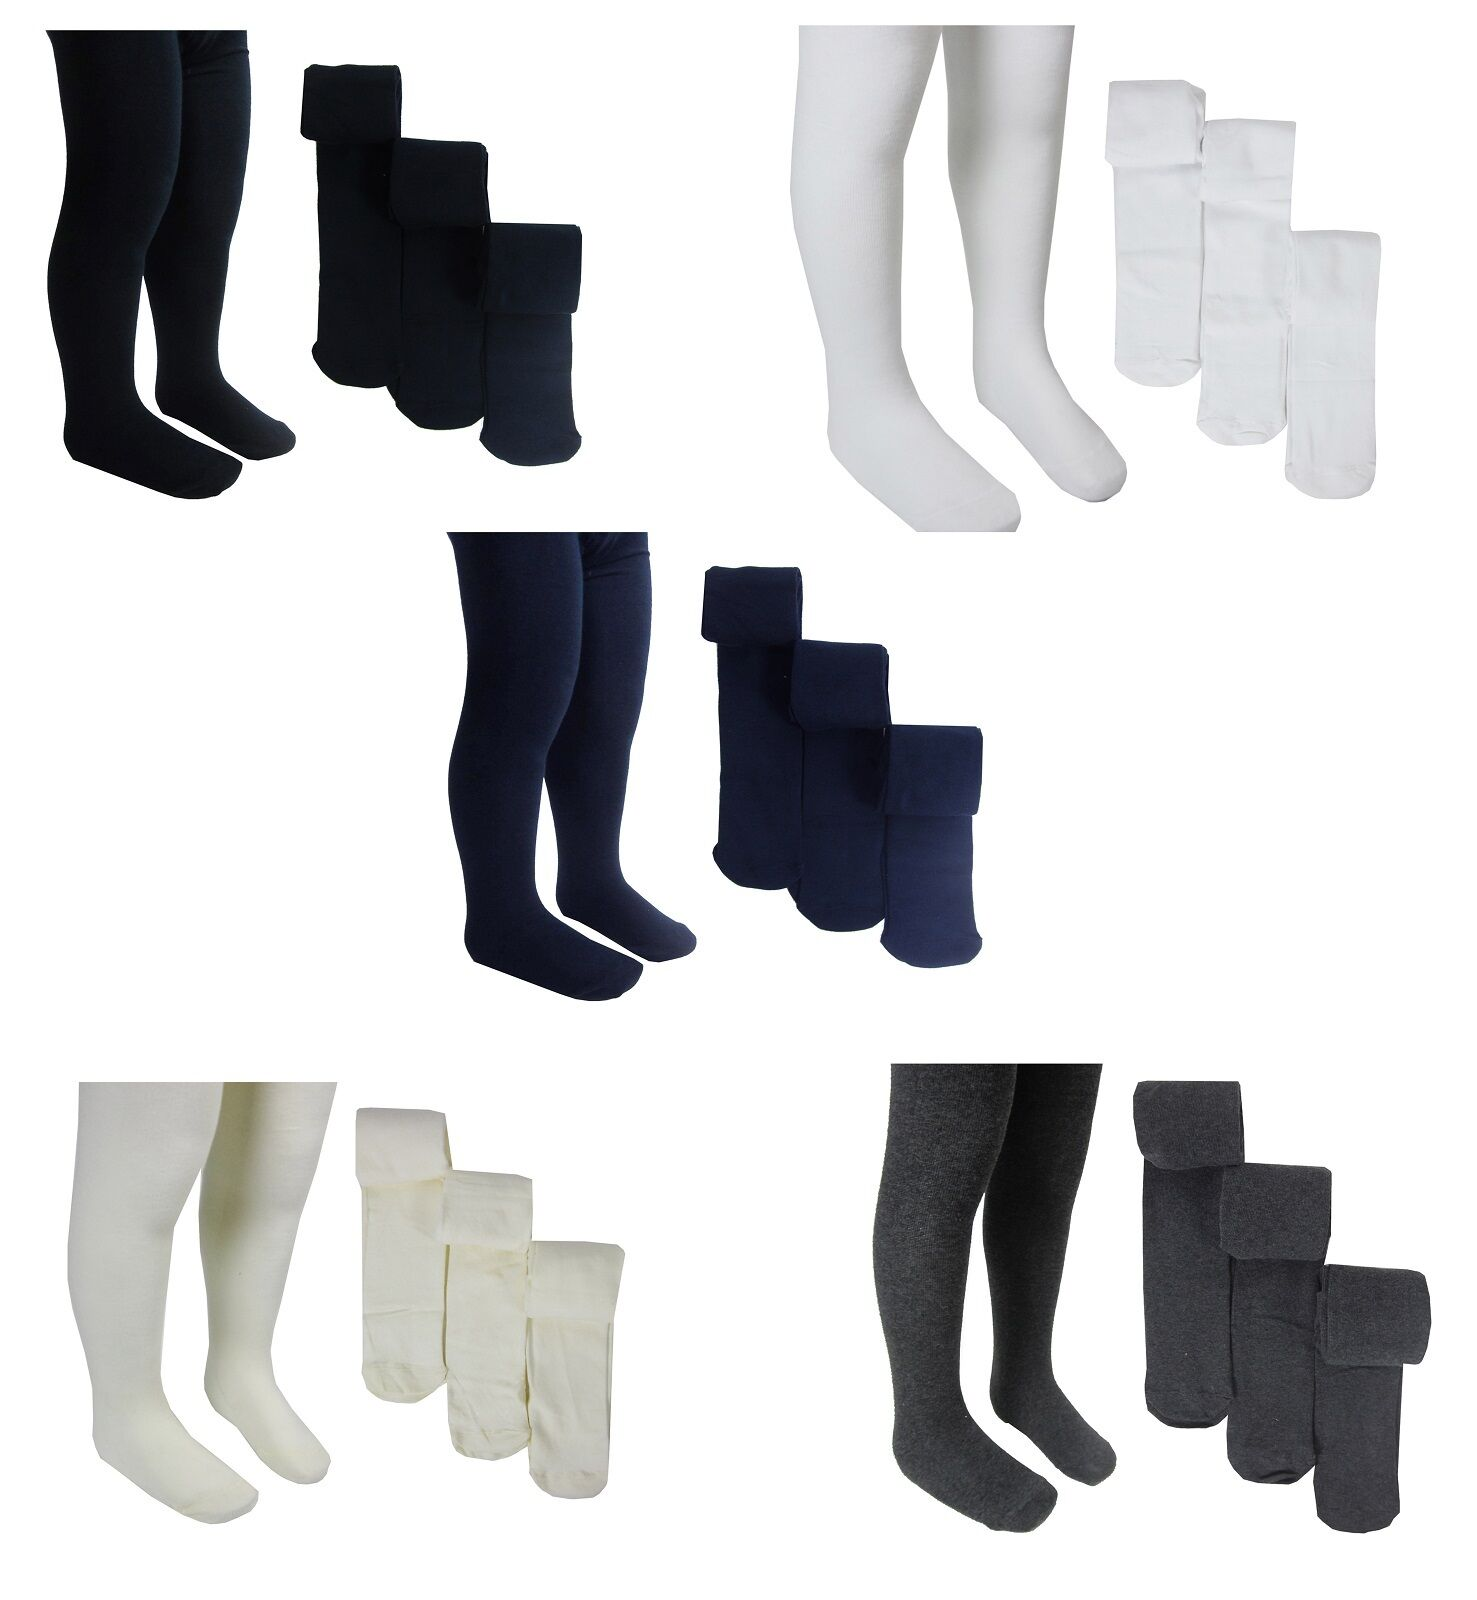 Ex M&S Girls Kids 3 Pack Tights School Tights 3 4 5 6 7 8 9 10 11 12 13 14 Years